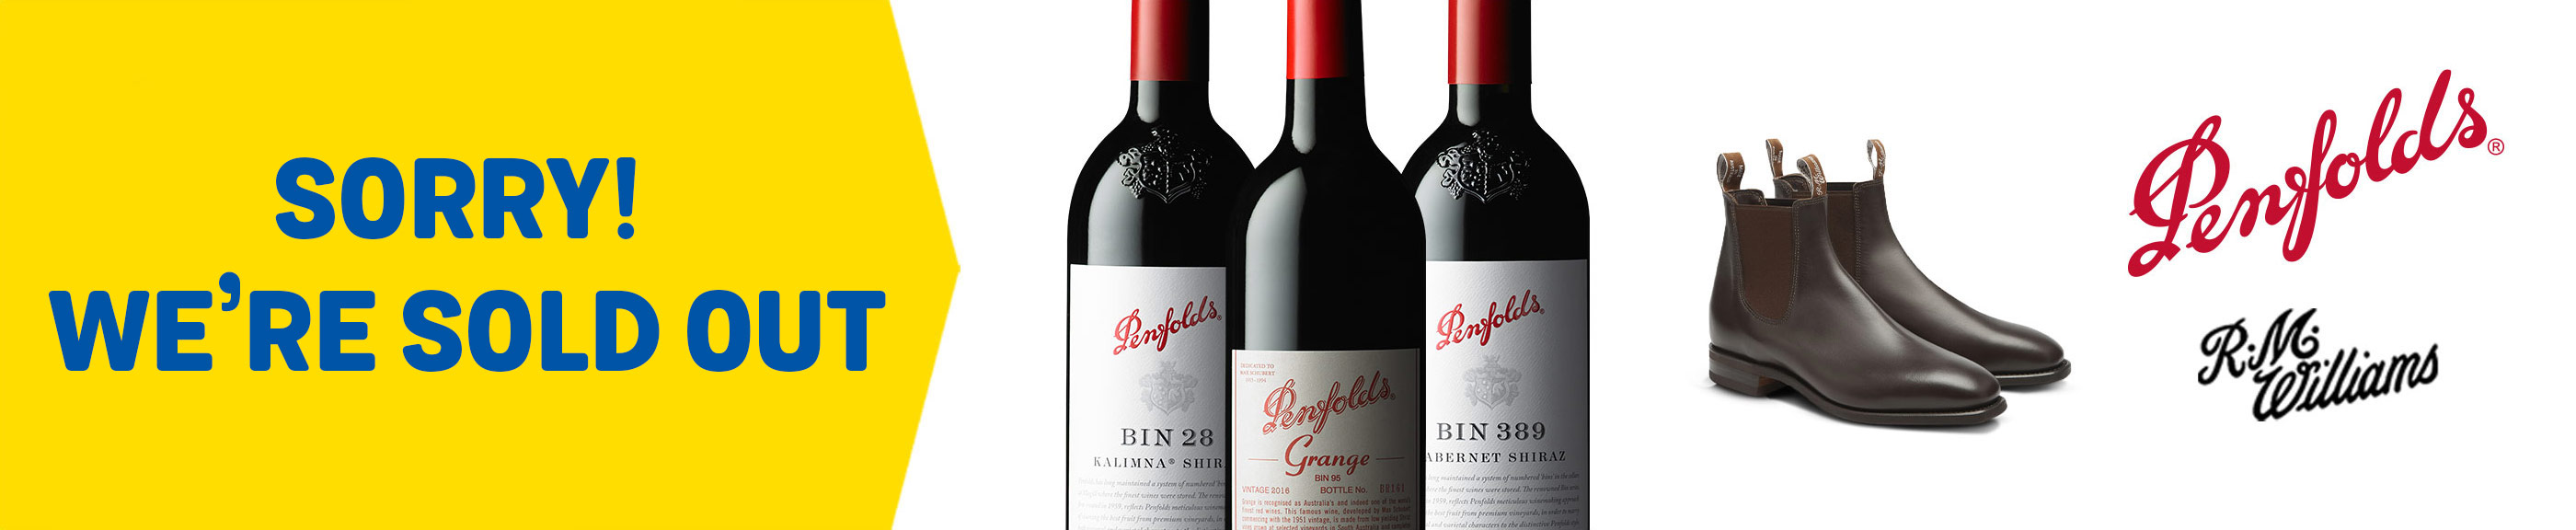 Sorry - We're sold out. Spend a min $990 on Penfolds and receive a pair of R.M. Williams Boots